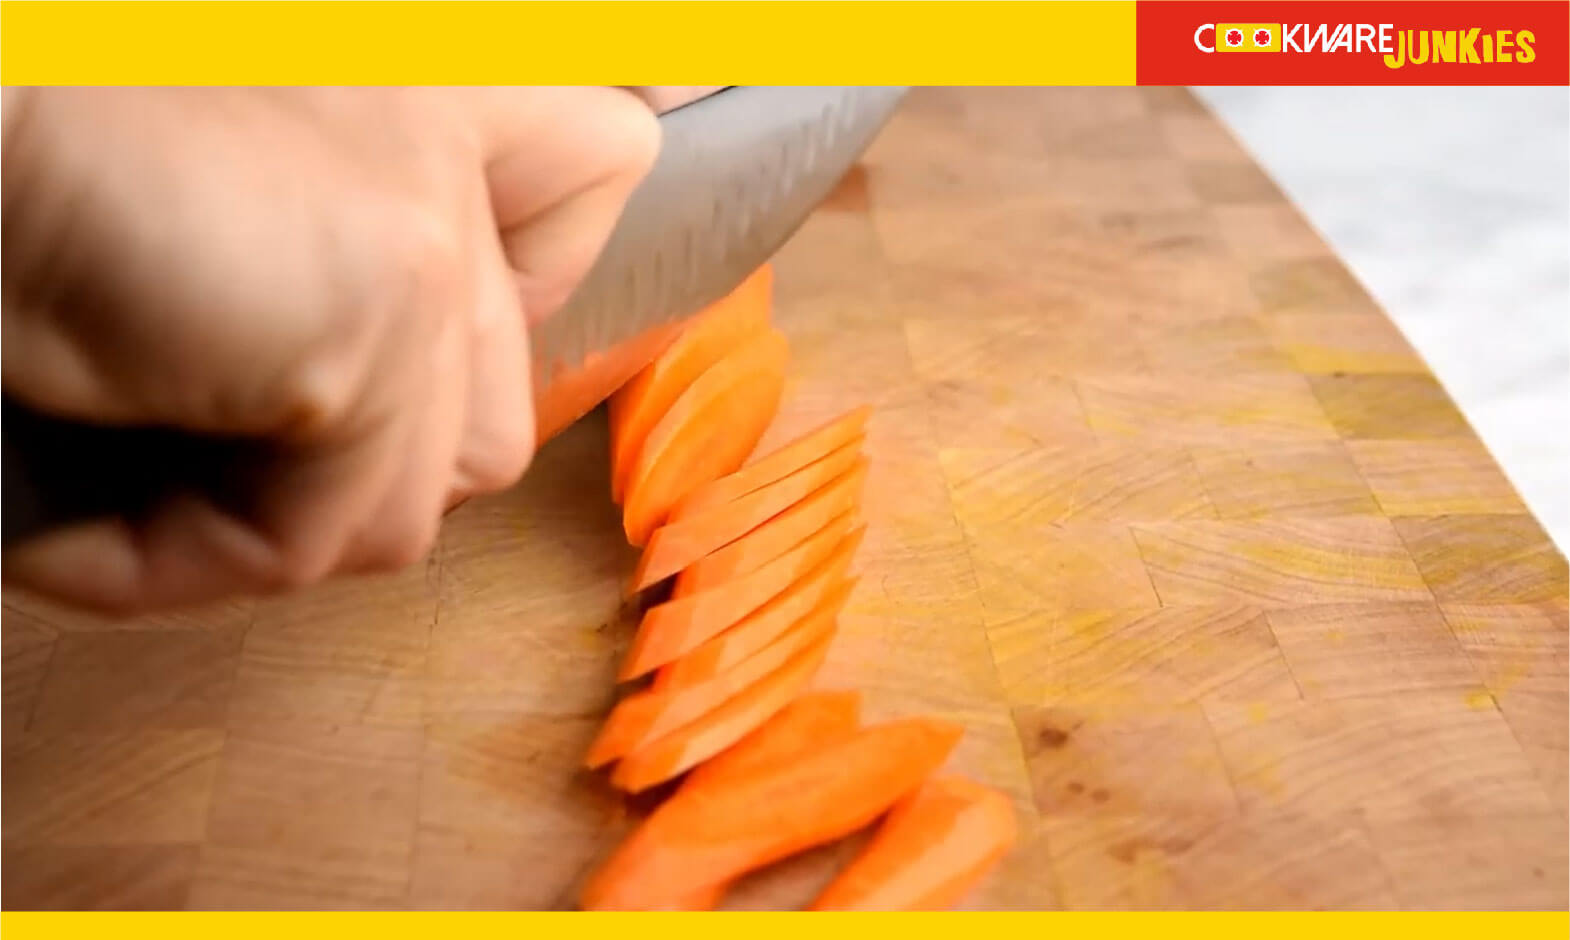 A man making Diagonal cuts of carrot on wood surface